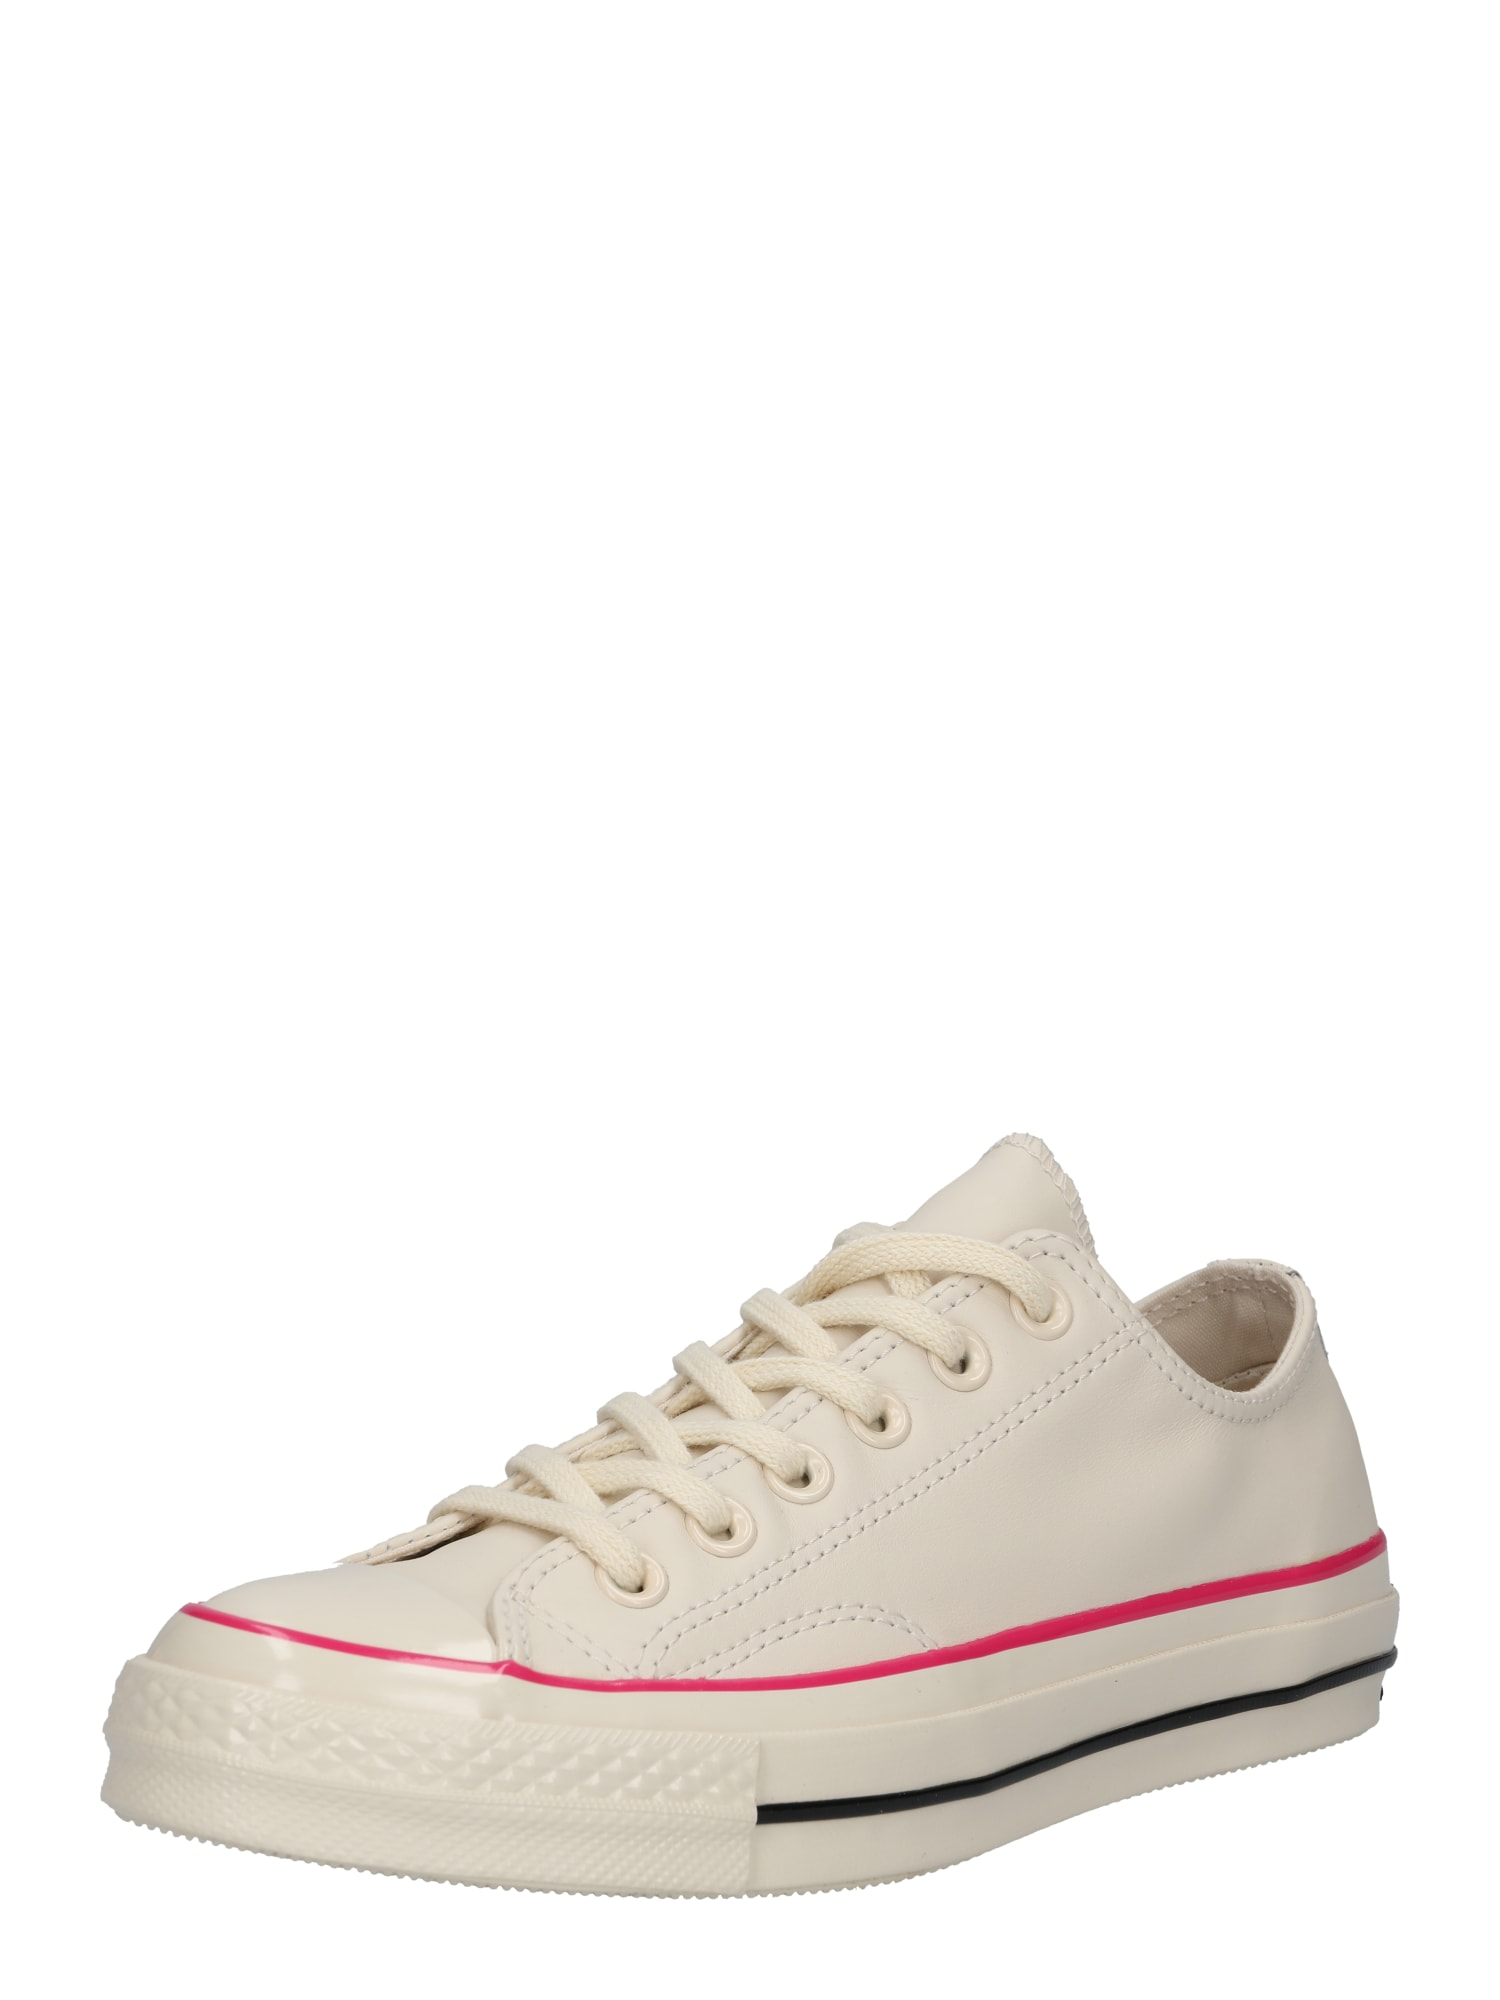 Tenisky CHUCK 70 - OX pink offwhite CONVERSE